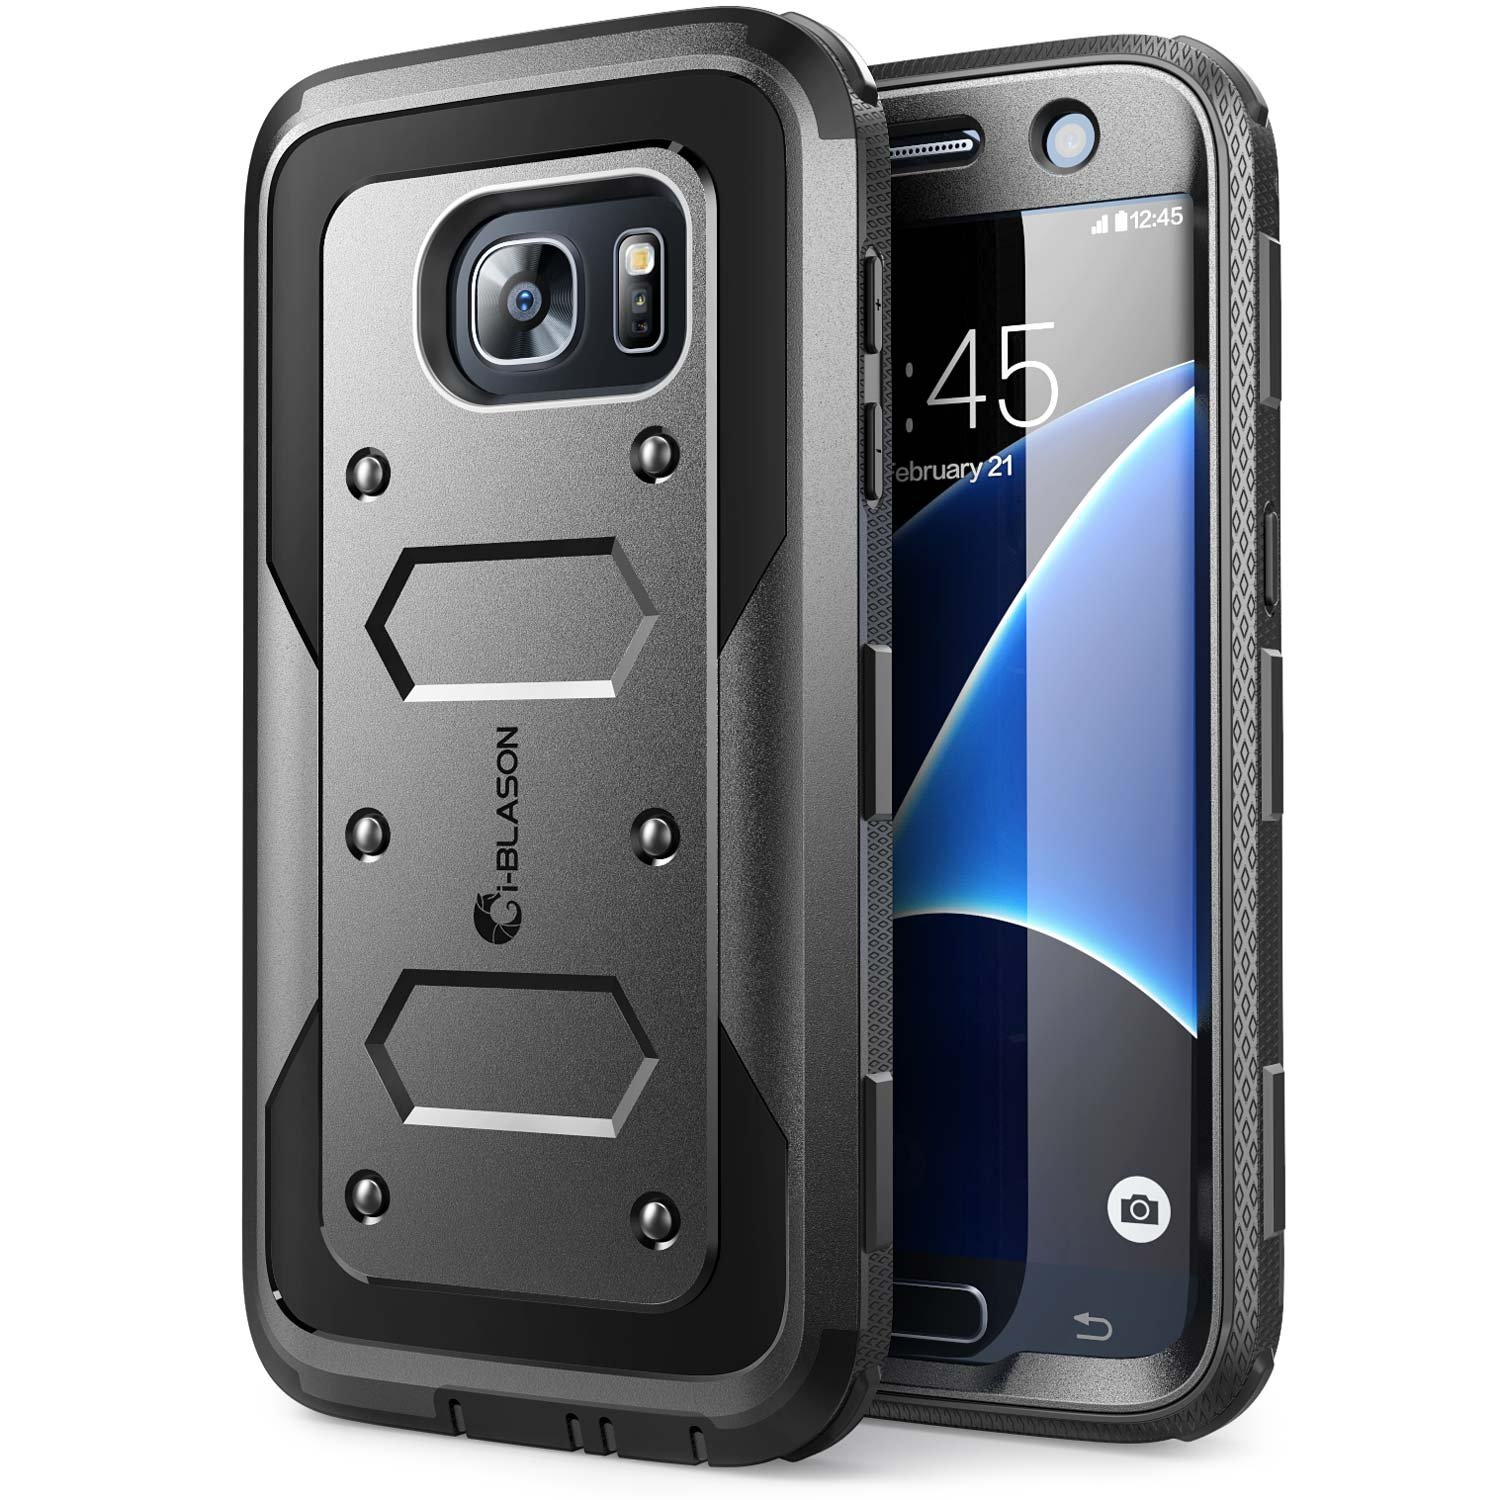 finest selection 4a060 bb441 Galaxy S7 Case, [Armorbox] i-Blason built in [Screen Protector] [Full body]  [Heavy Duty Protection ] Shock Reduction / Bumper Case for Samsung Galaxy  ...